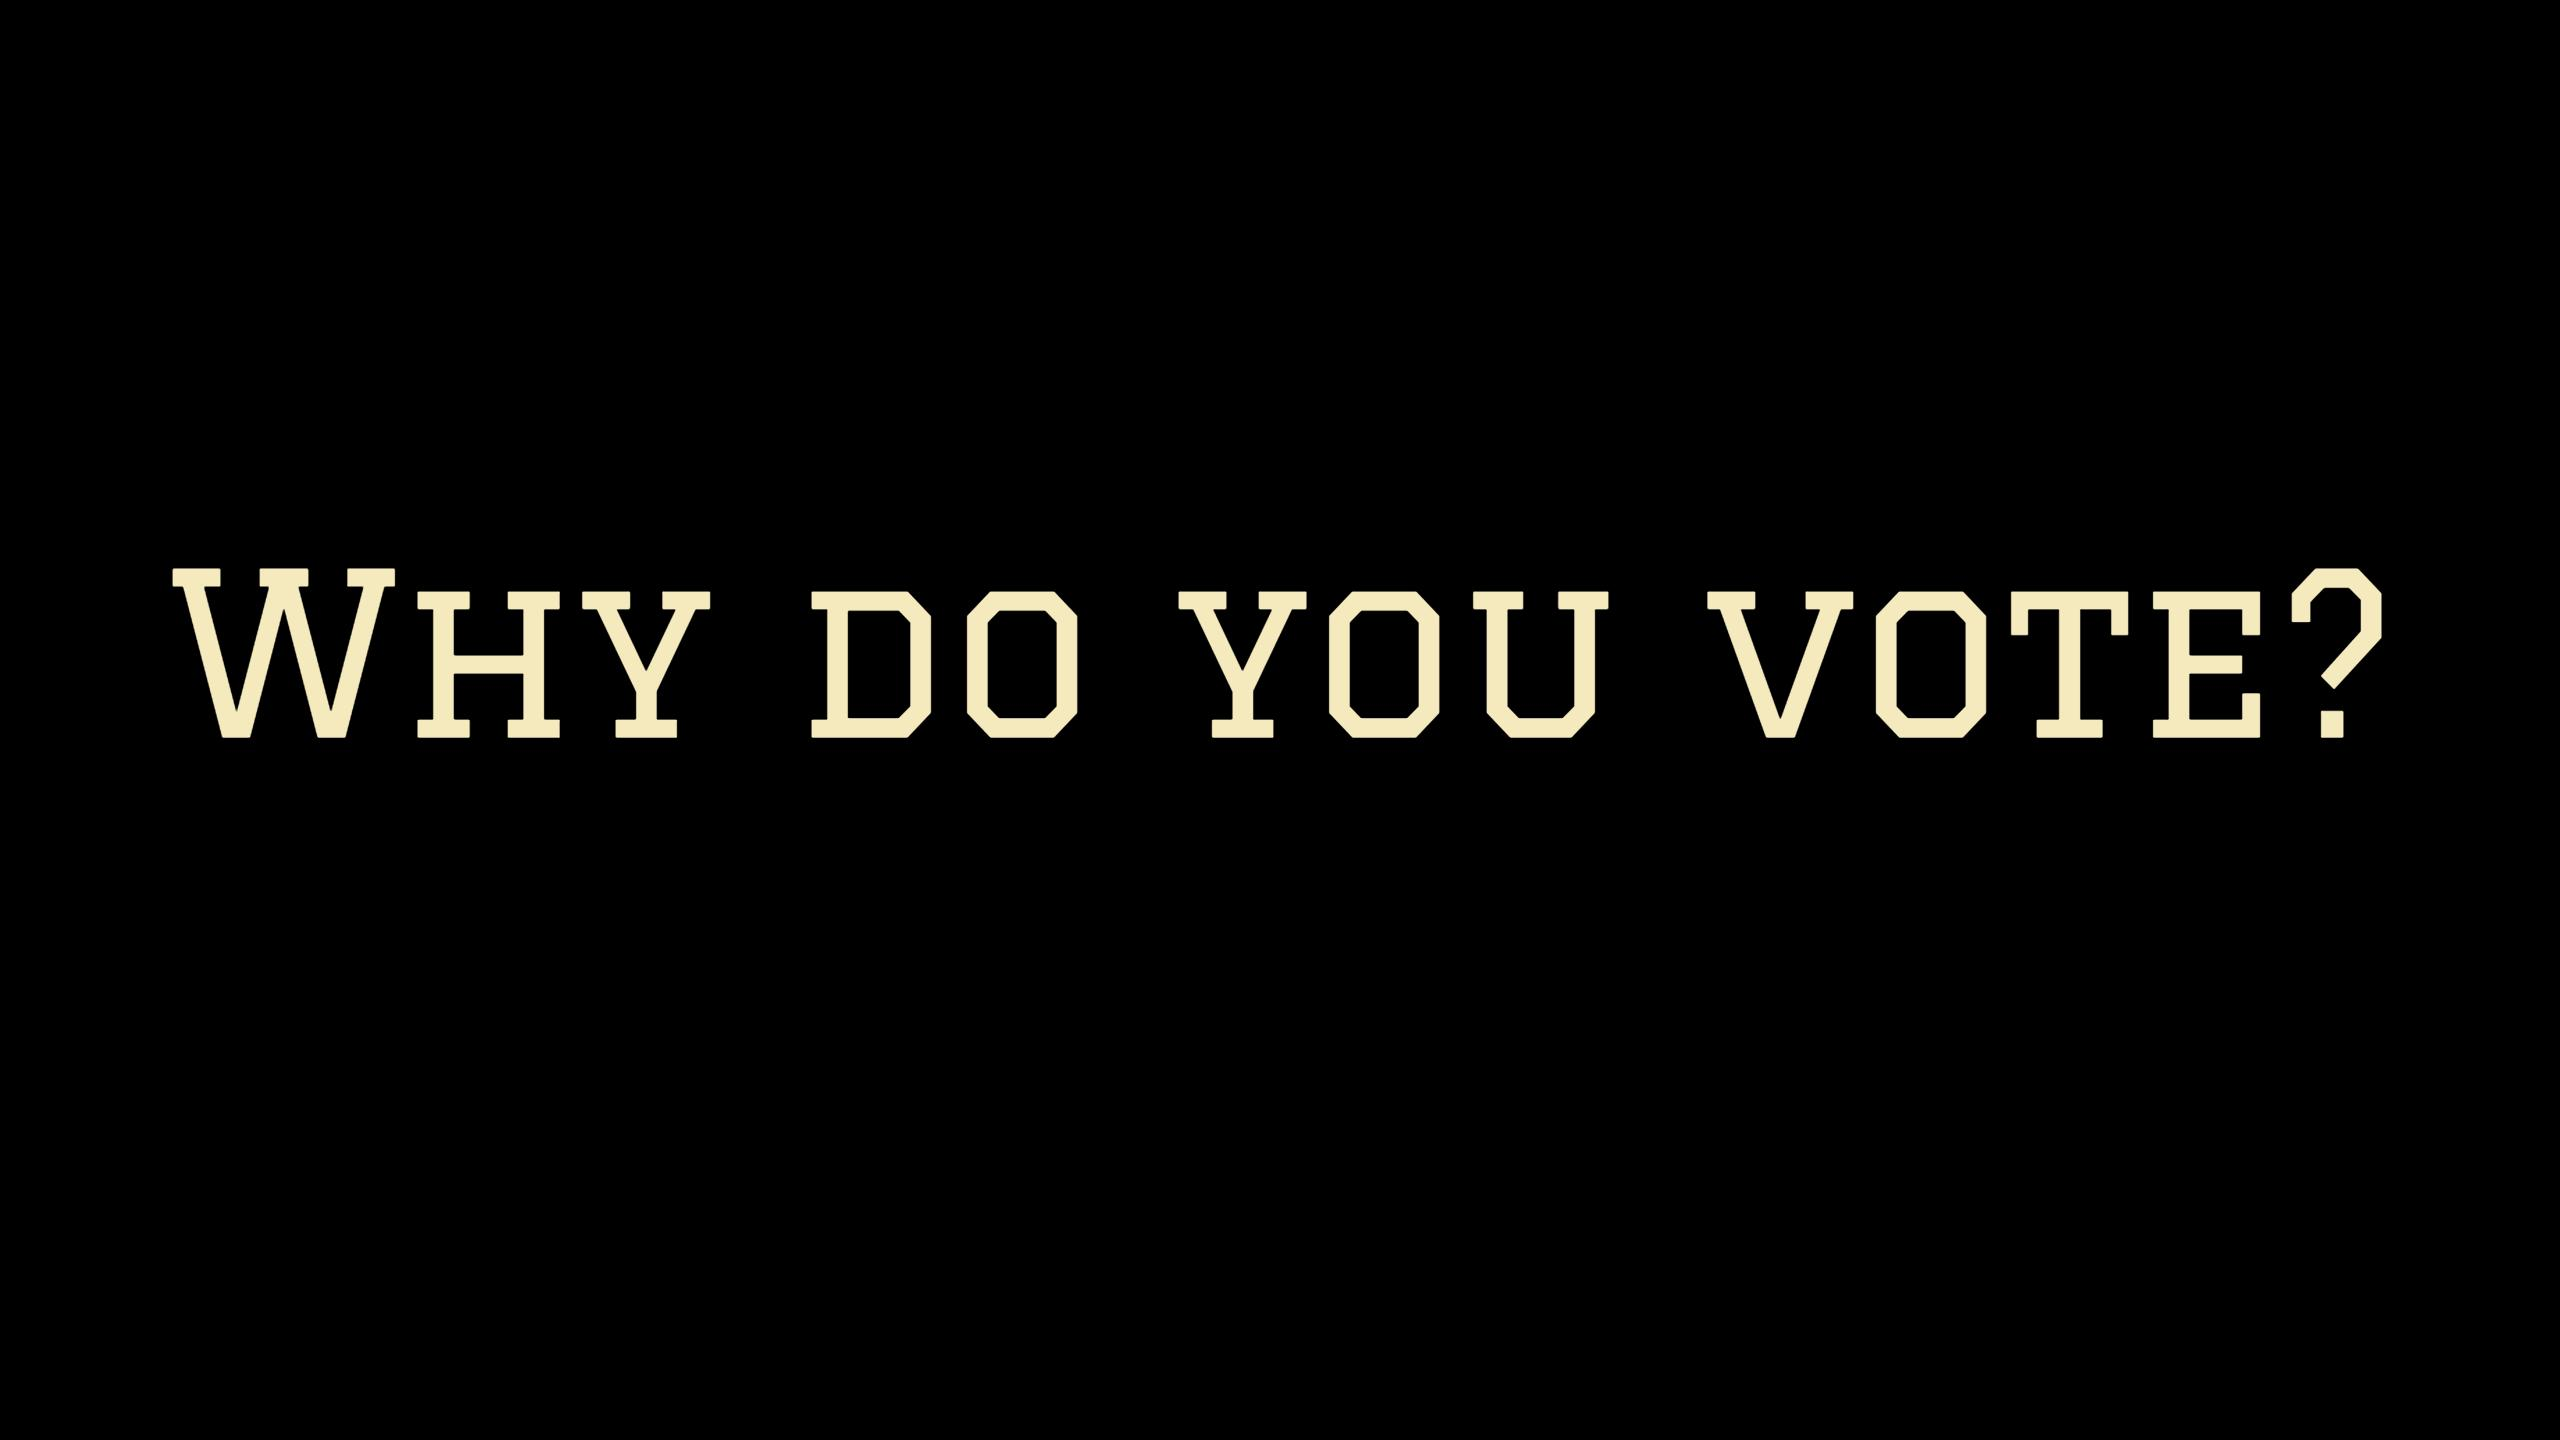 Why do you vote?